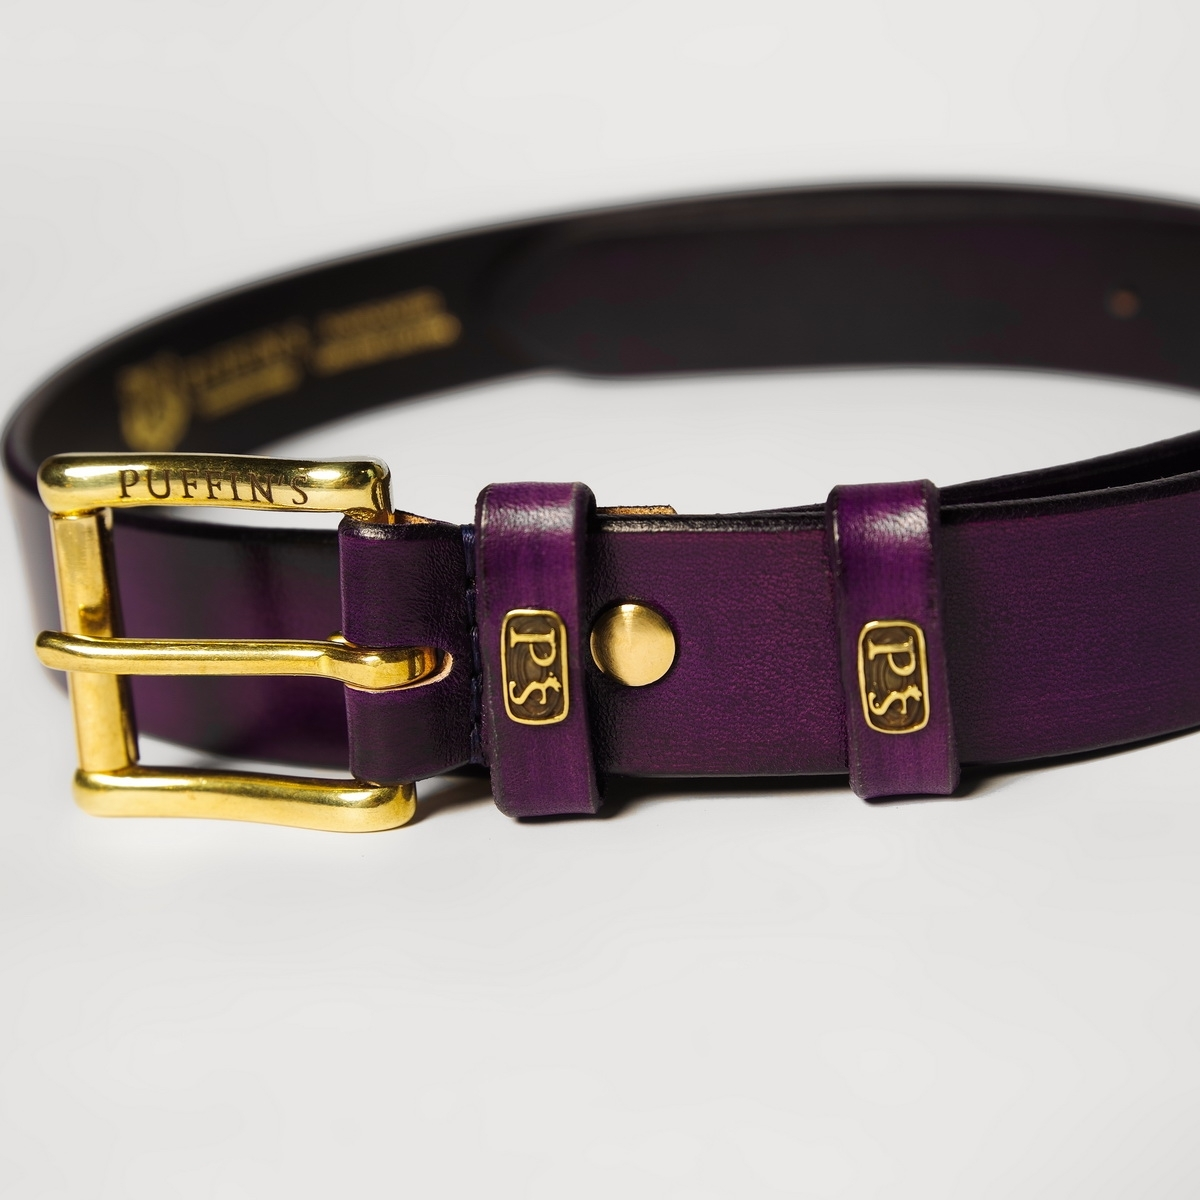 32mm traditional belt for jeans violet ink